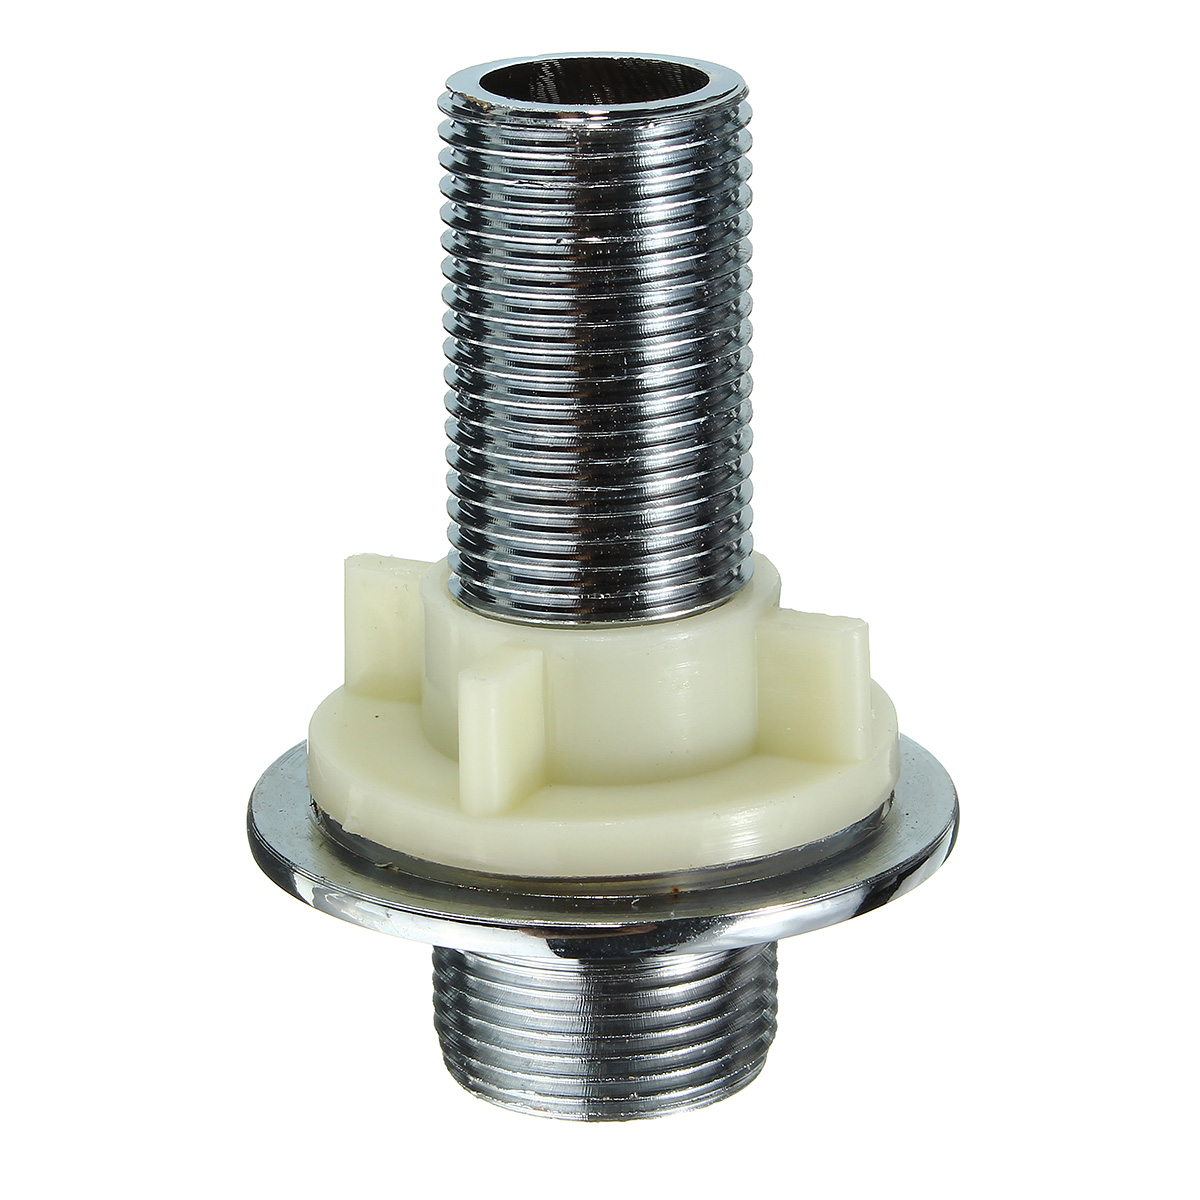 Foot Pedal Valve Switch Copper for Basin Tap Faucet Lab